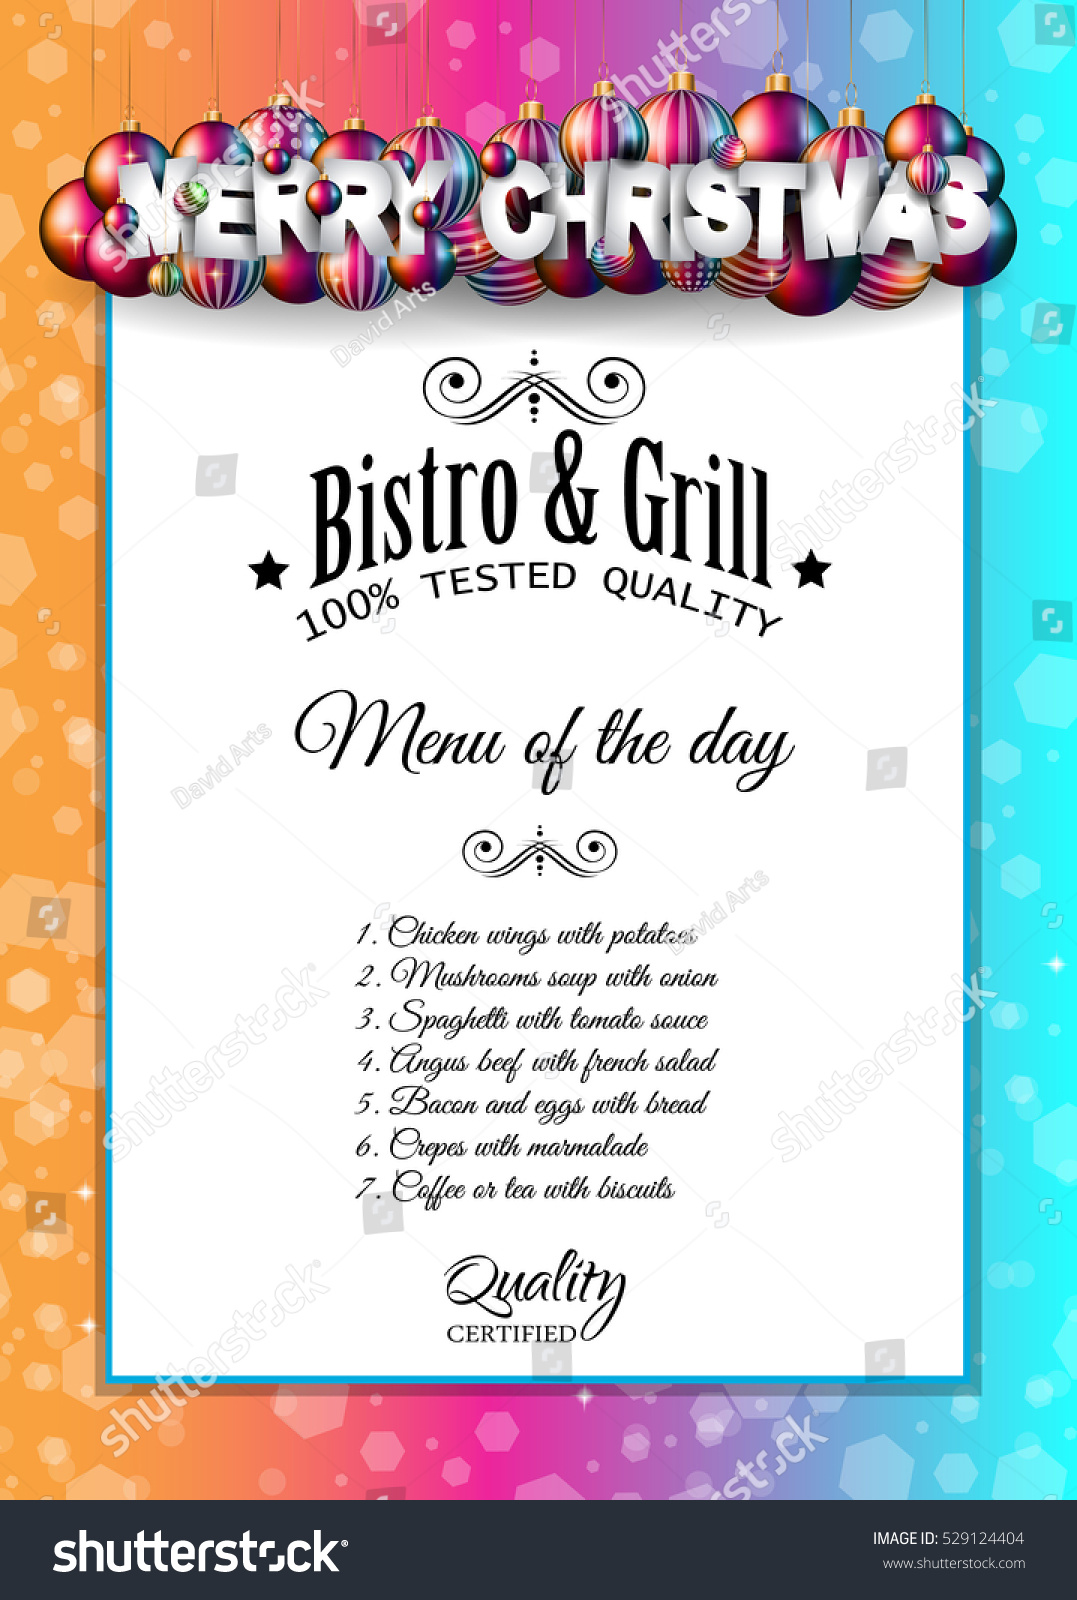 Christmas Dinner Lunch Restaurant Menu Template Stock Vector